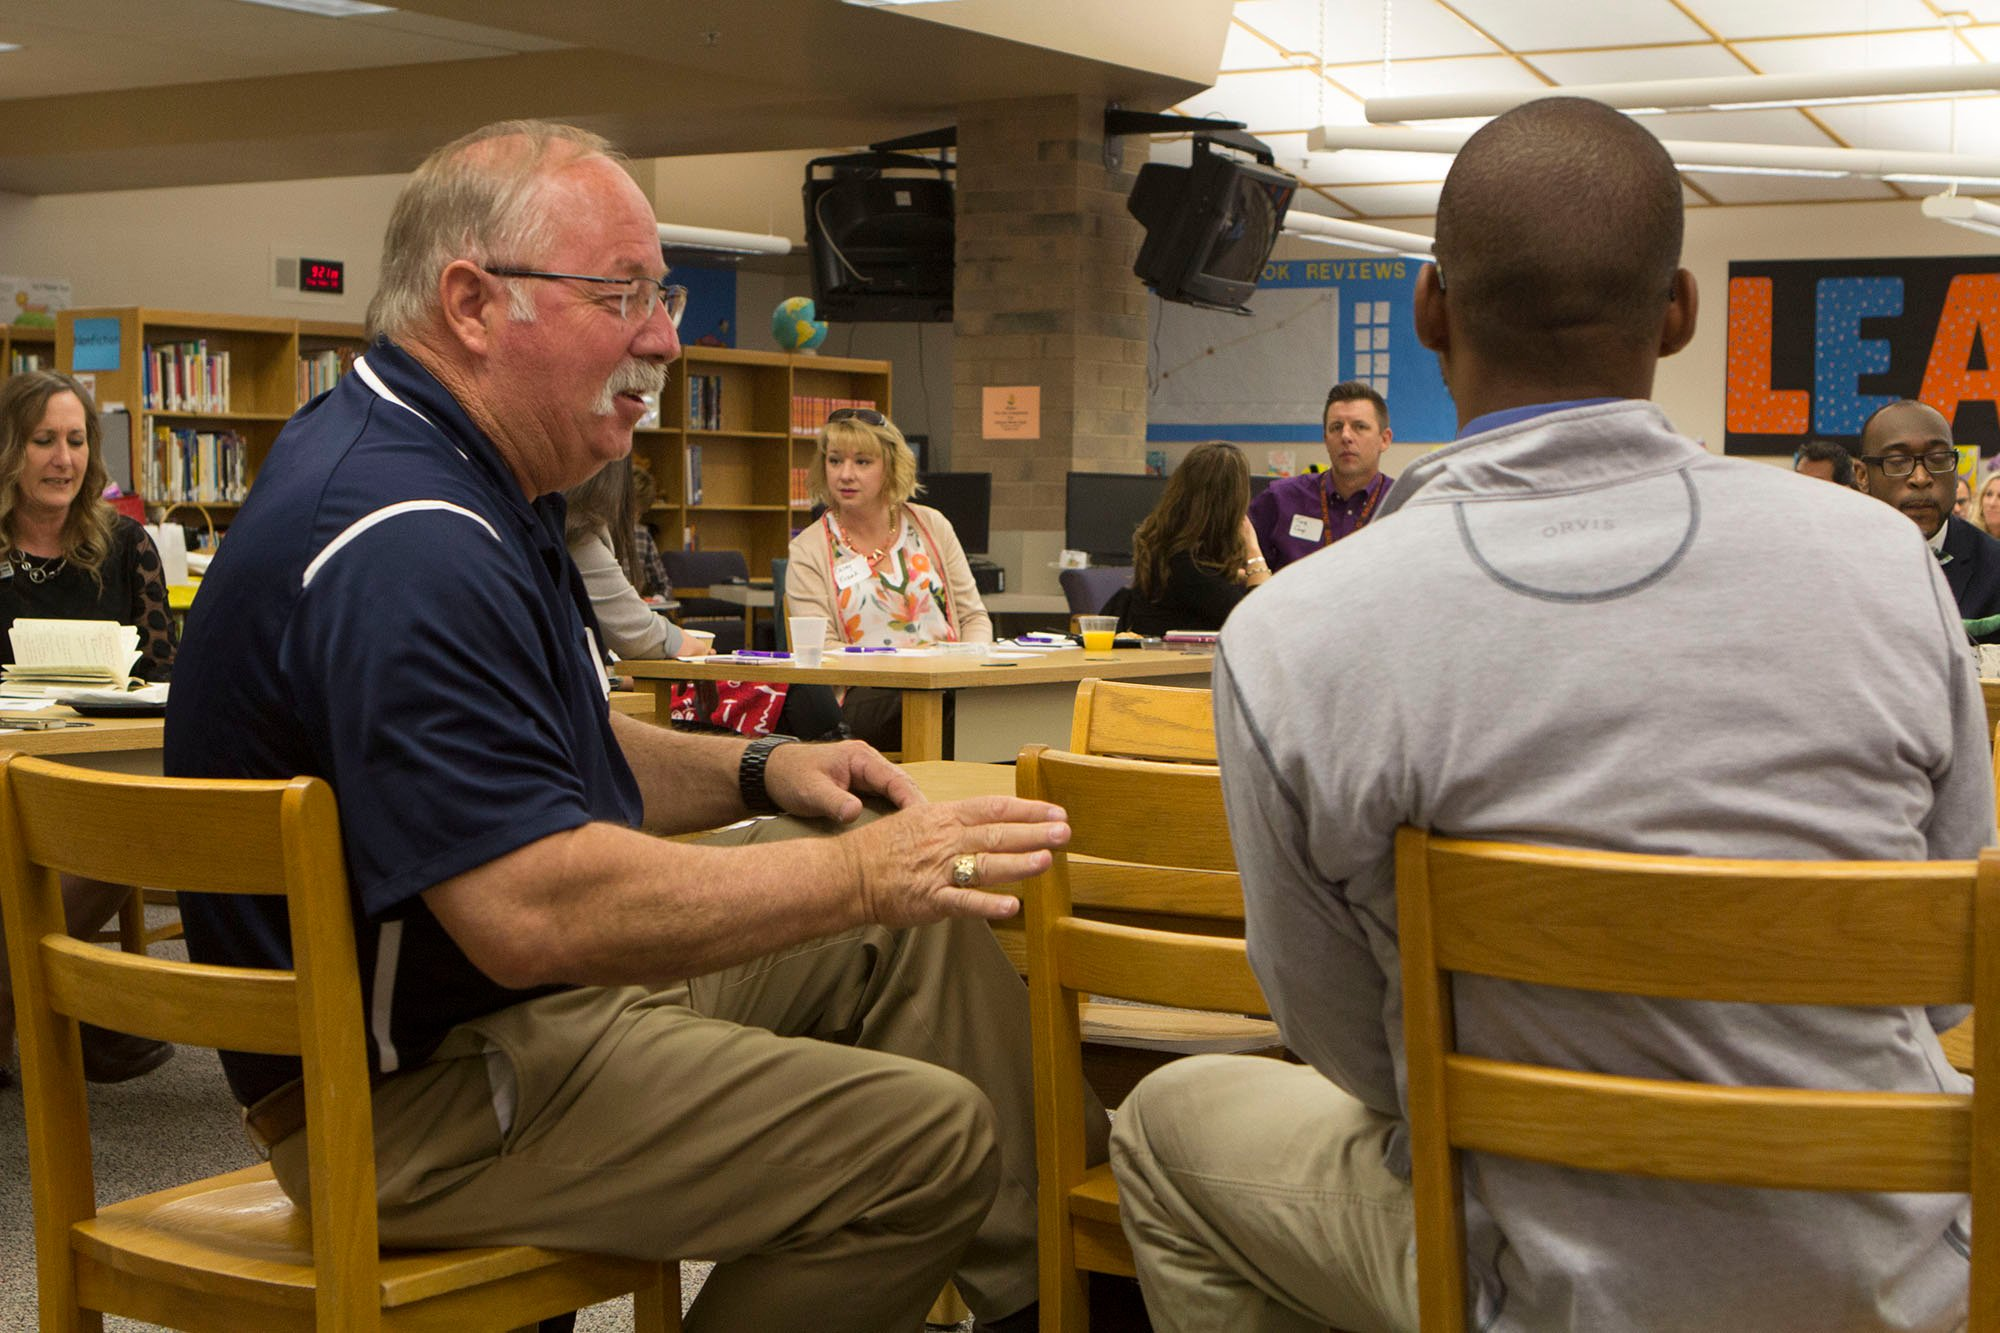 Youngker High School Principal Rob Roberson, left, has been an educator for 41 years, including 20 years as a school principal. He said he doesn't stress much anymore. (Photo by Paola Garcia/Cronkite News)